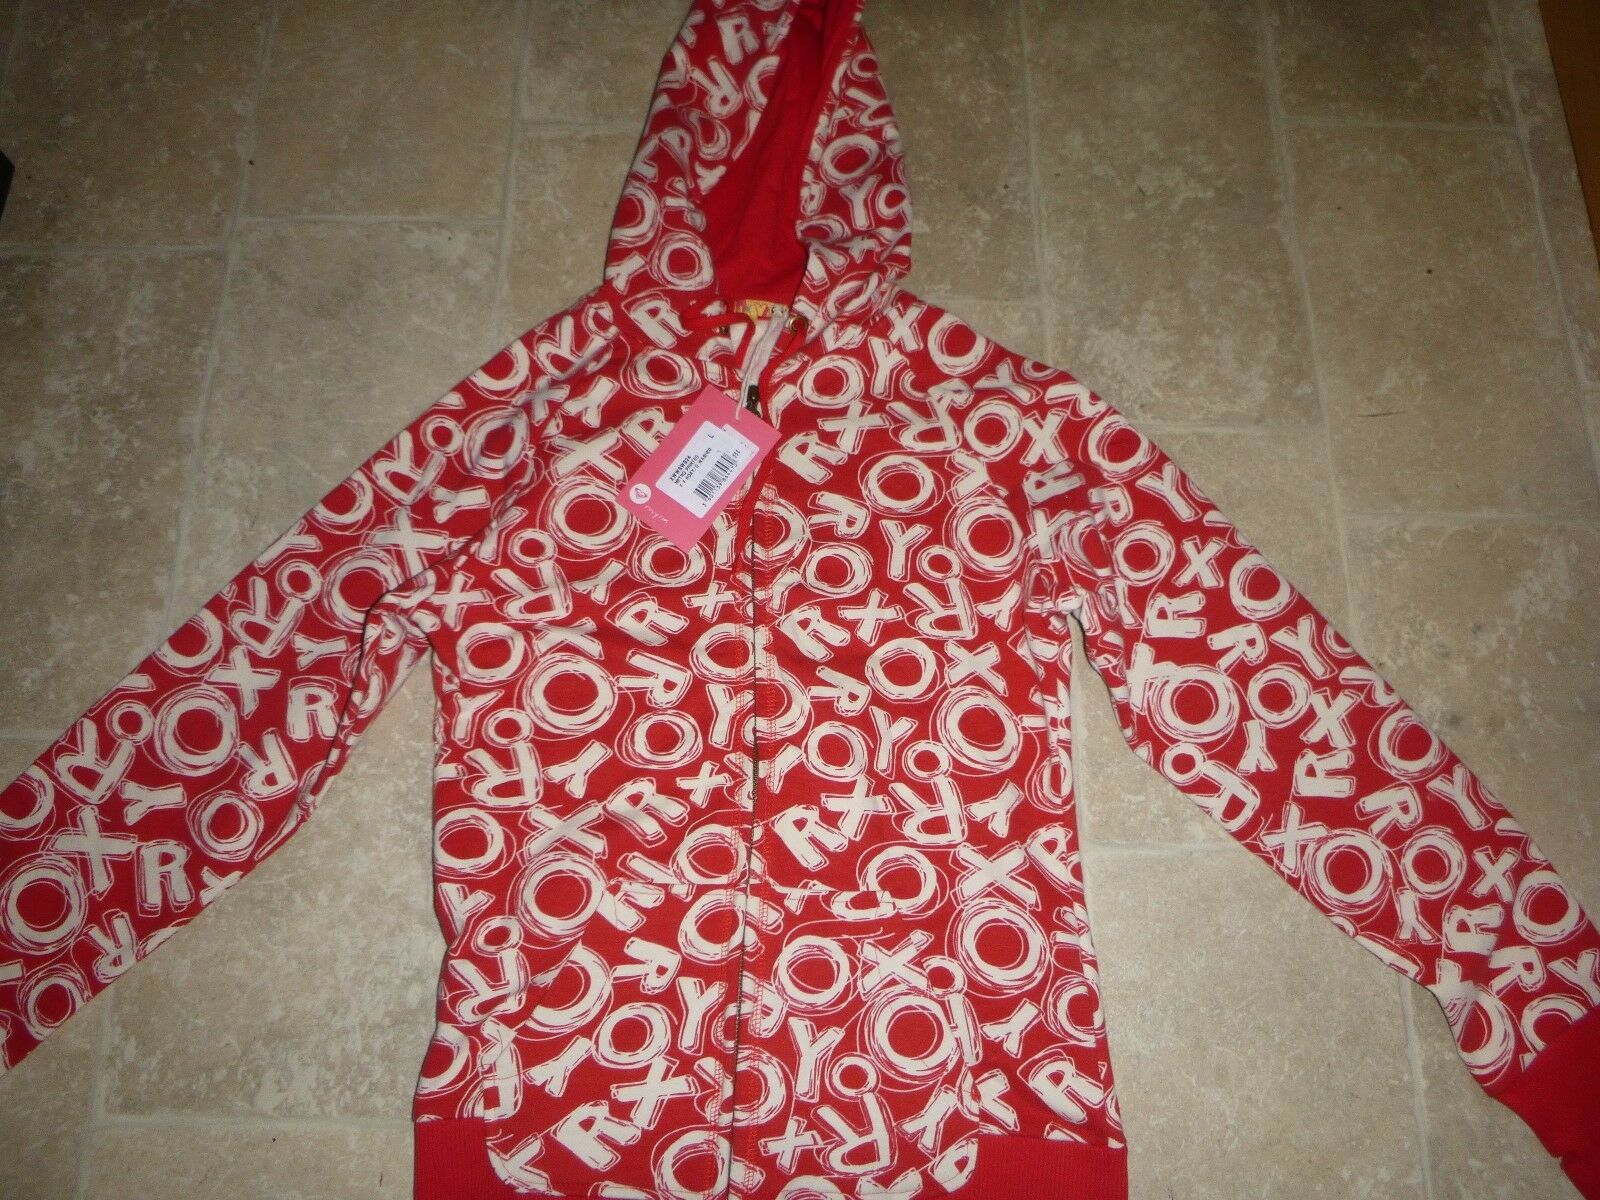 BNWT Roxy Red White Roxy Hoddie Hooded Top Top Top Size Large fc7e5f